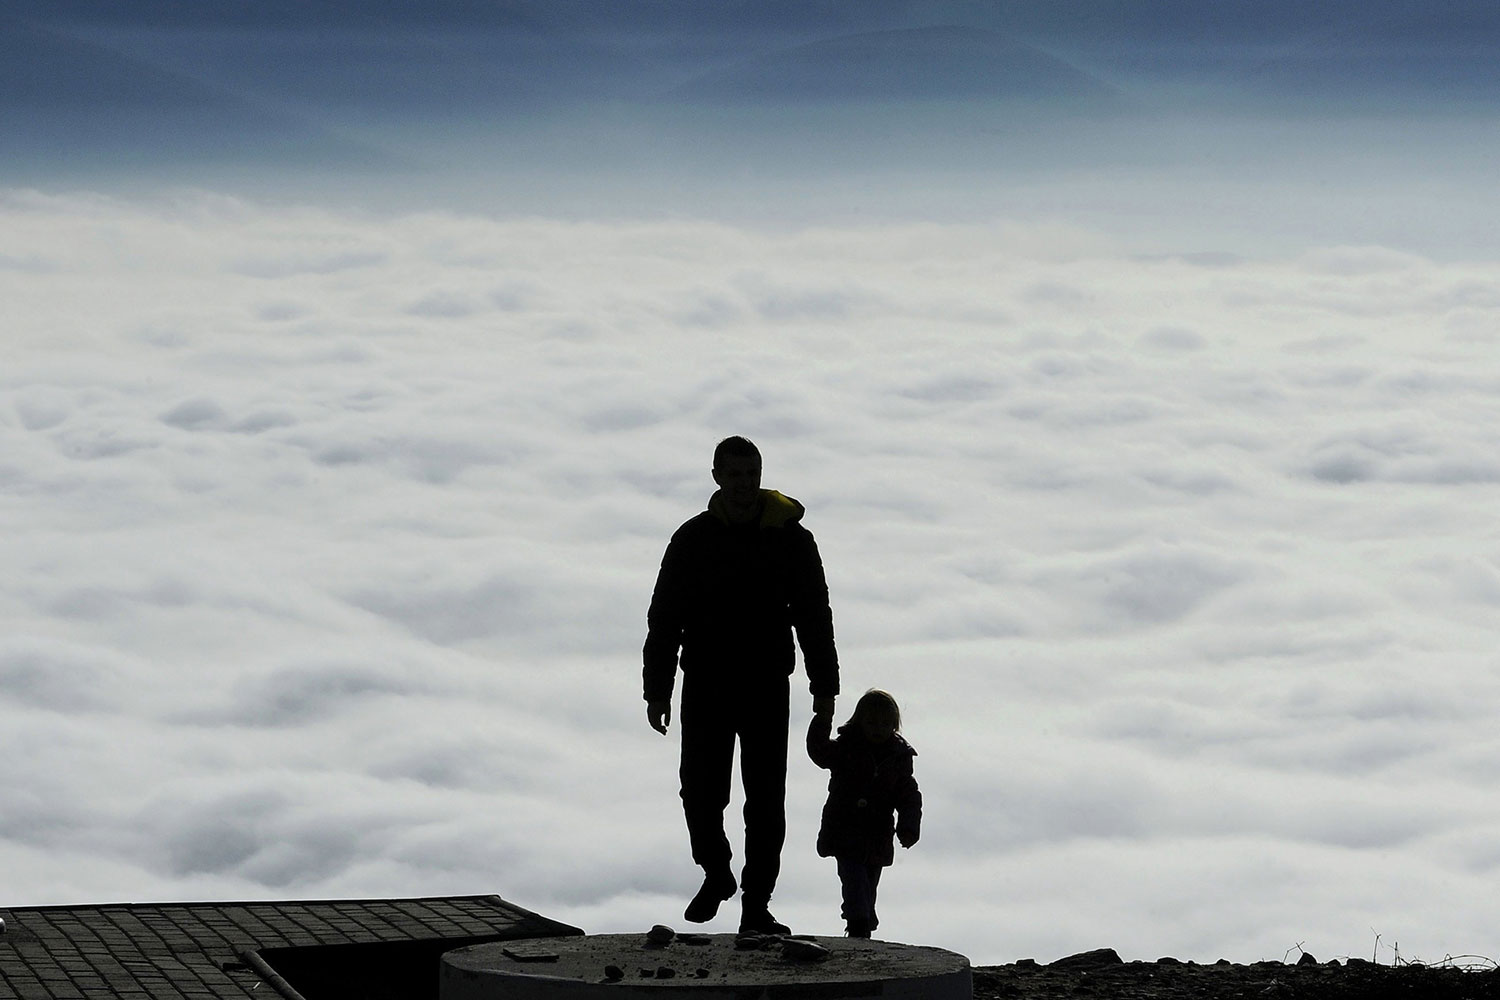 Jan. 9, 2014. A man with a child walks towards the top of Vodno Mountain in Skopje, Macedonia.